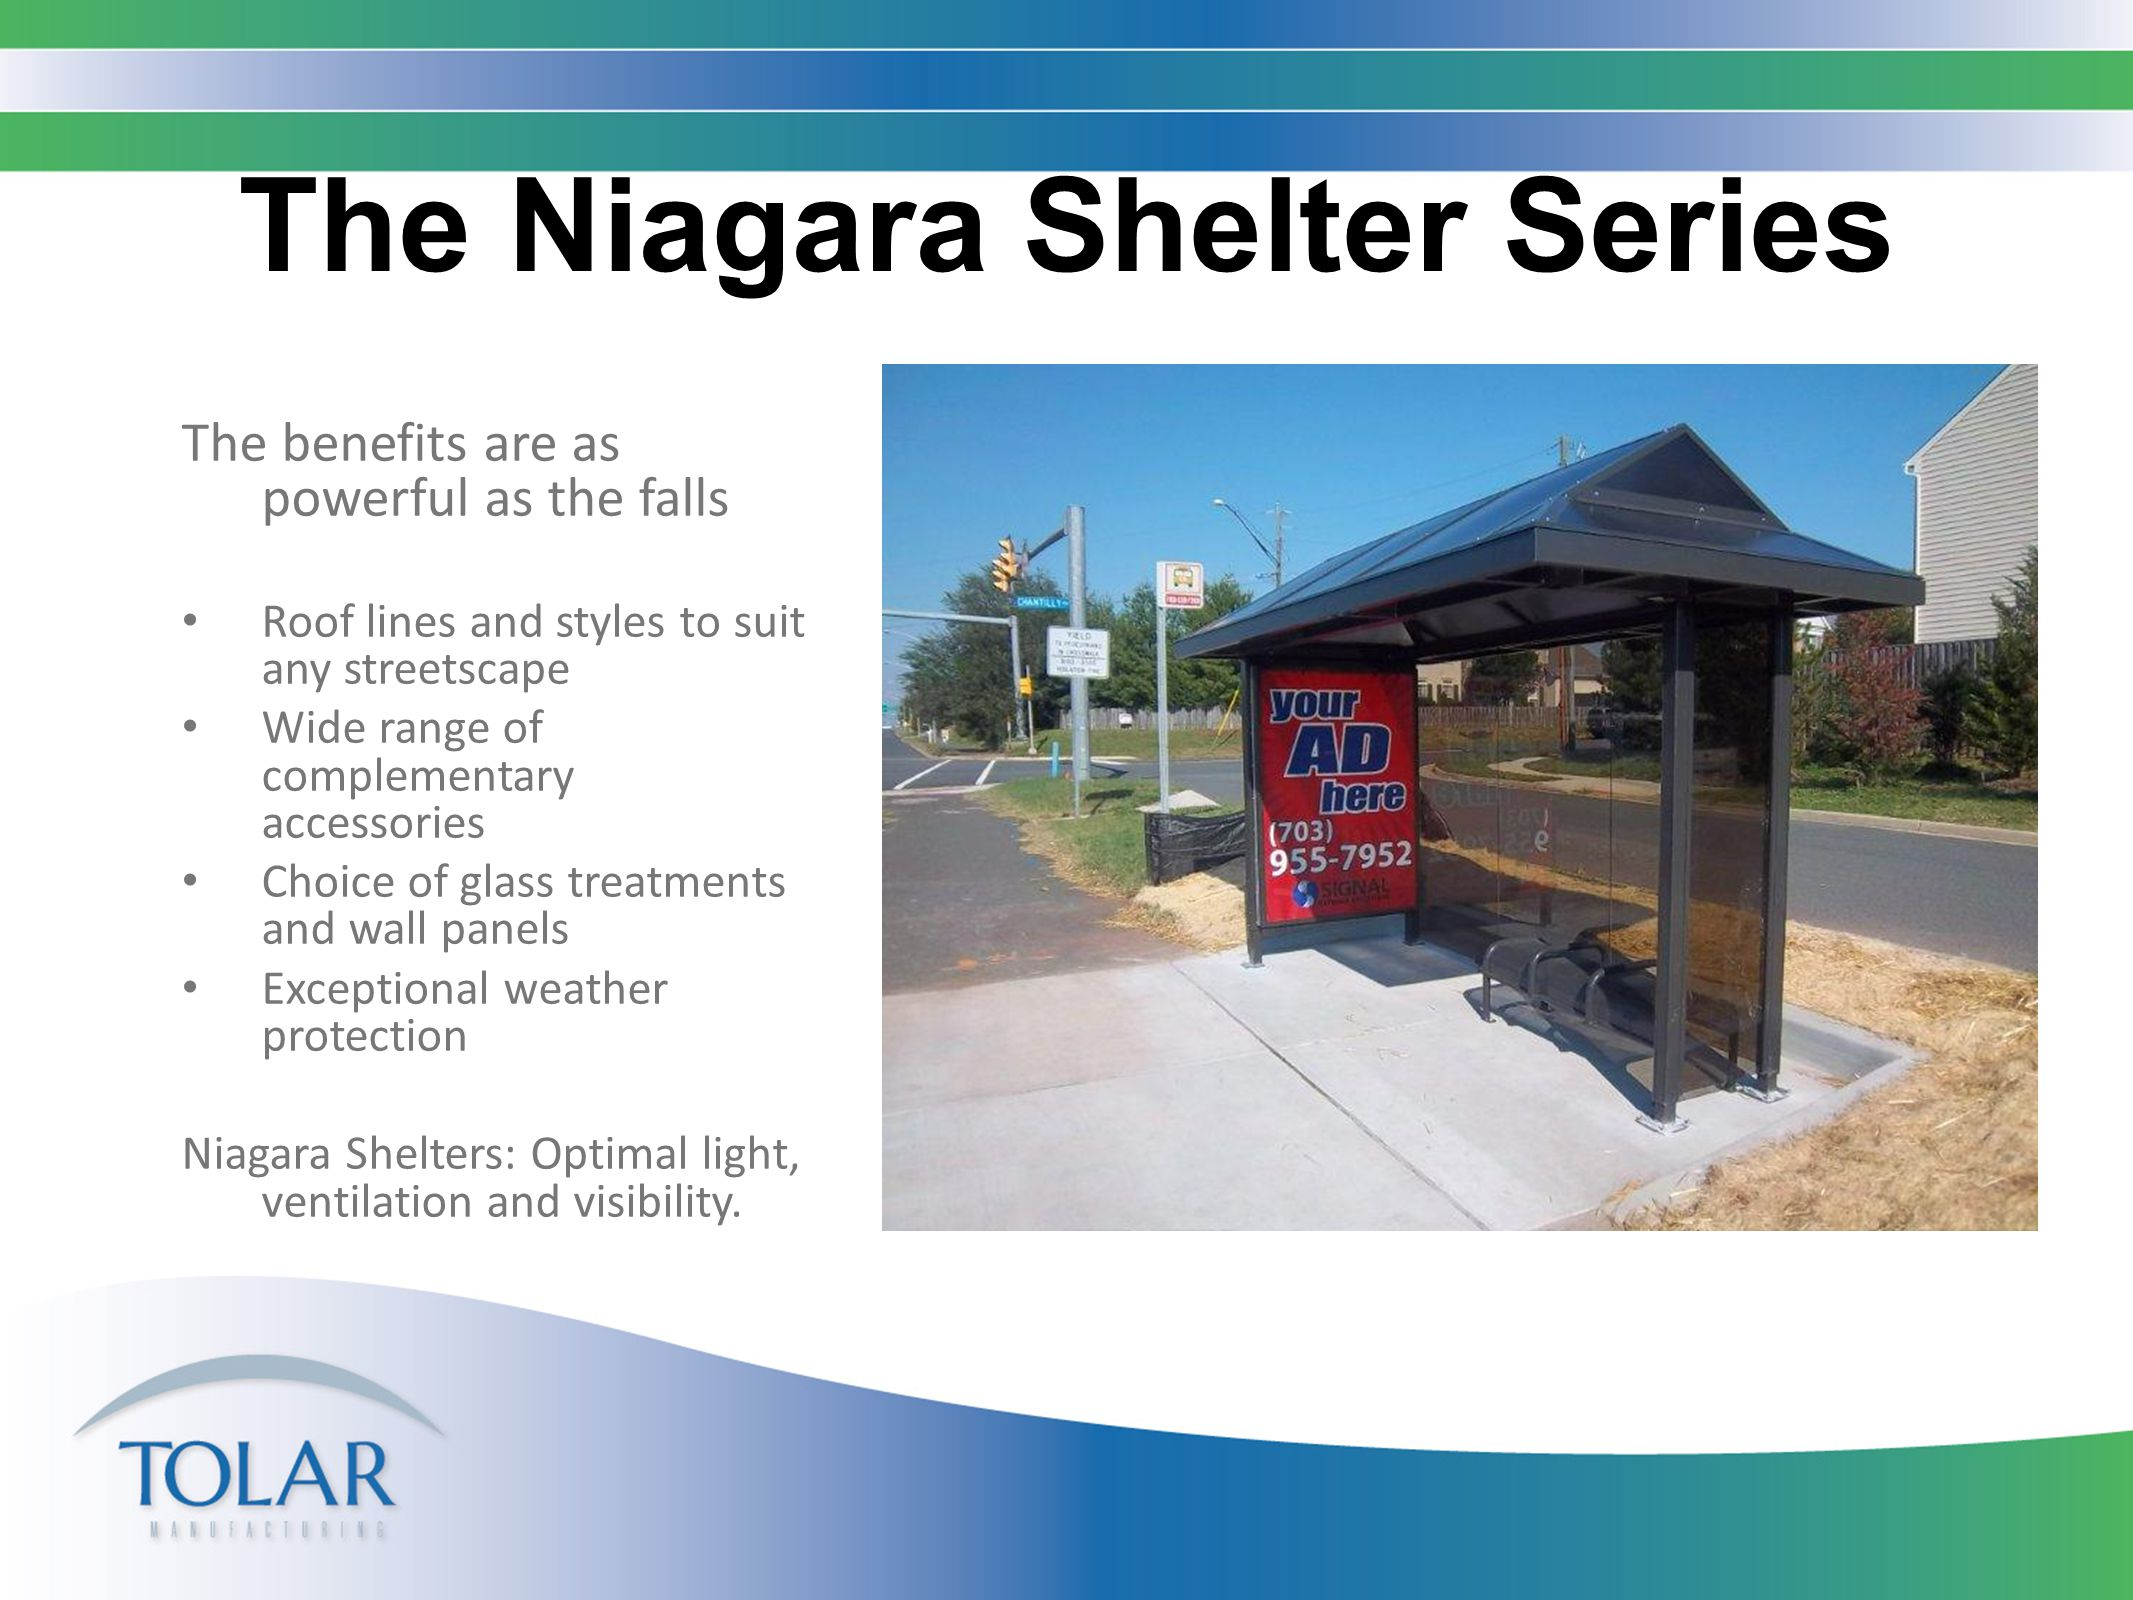 The Niagara Shelter Series The benefits are as powerful as the falls Roof lines and styles to suit any streetscape Wide range of complementary accessories Choice of glass treatments and wall panels Exceptional weather protection Niagara Shelters: Optimal light, ventilation and visibility.